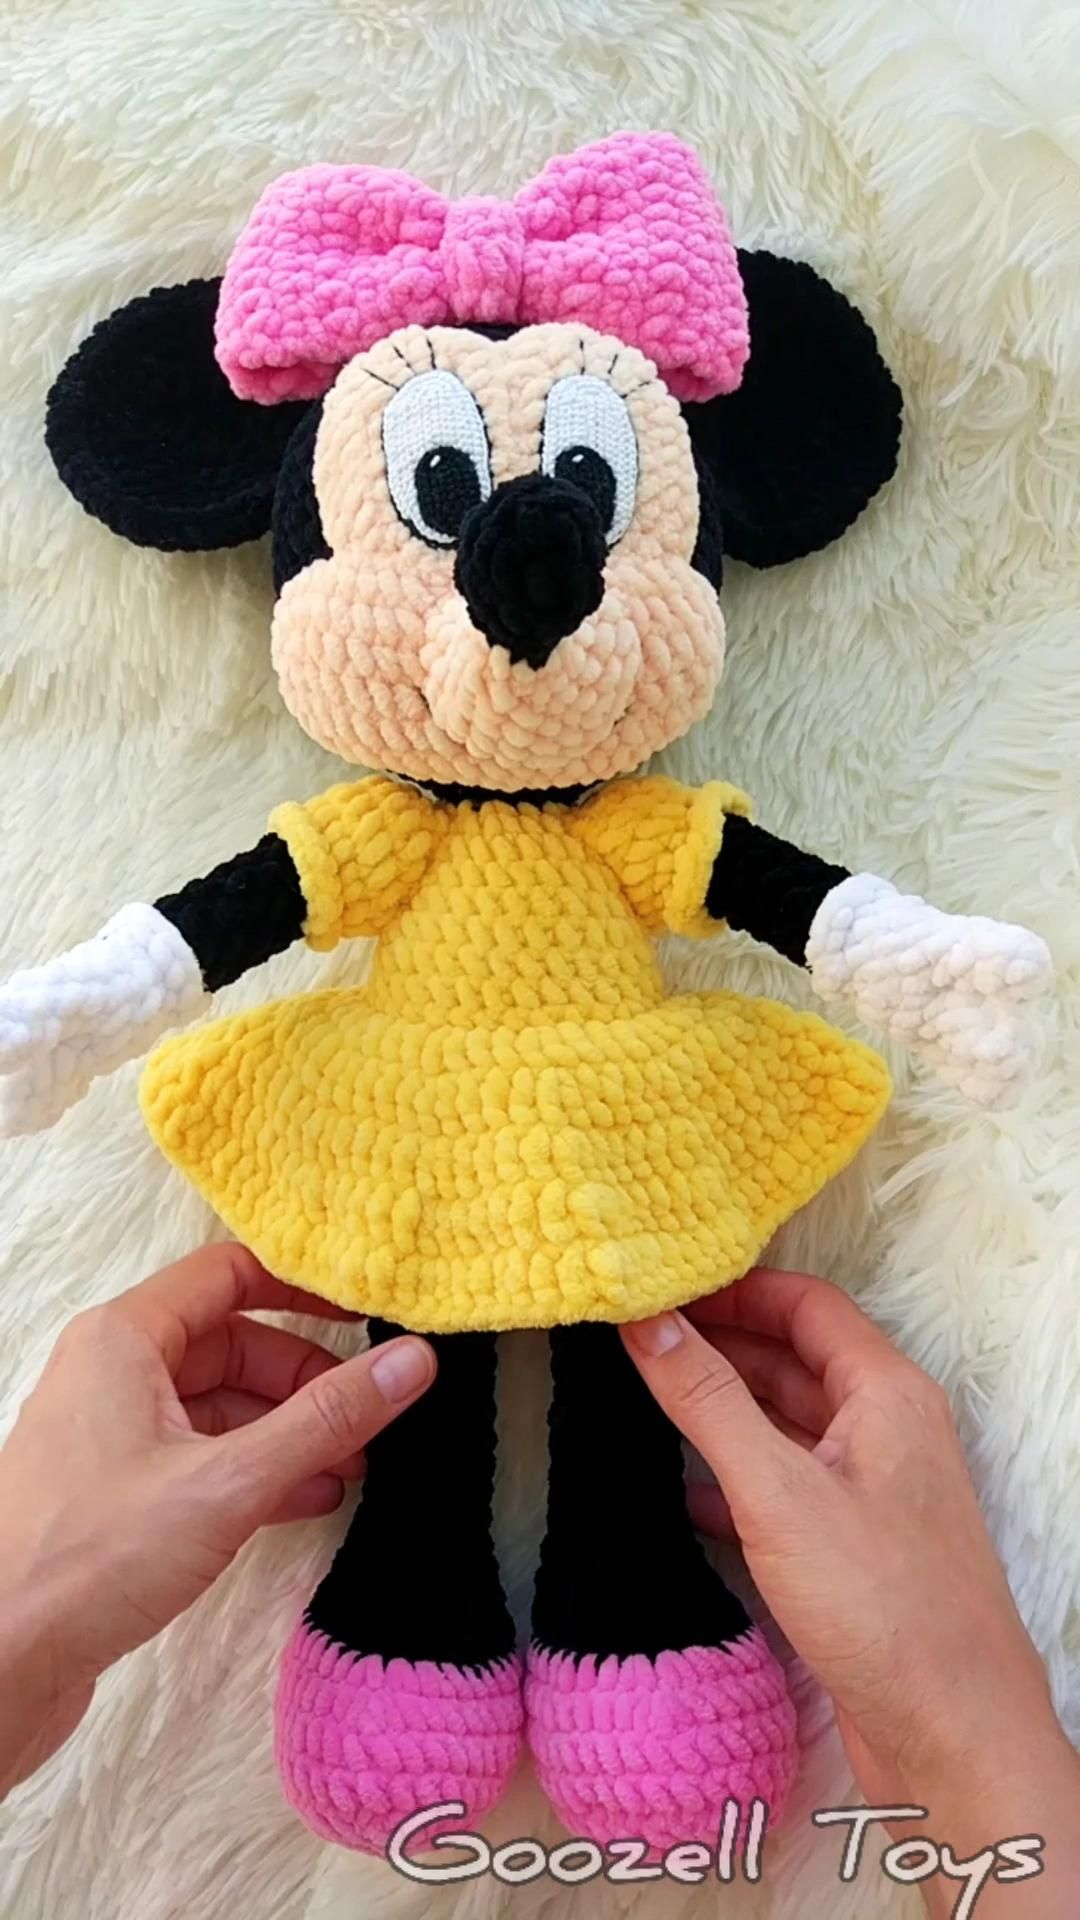 Minnie Mouse Crochet pattern - Disney crochet pattern - Amigurumi Knitting Toy PDF pattern